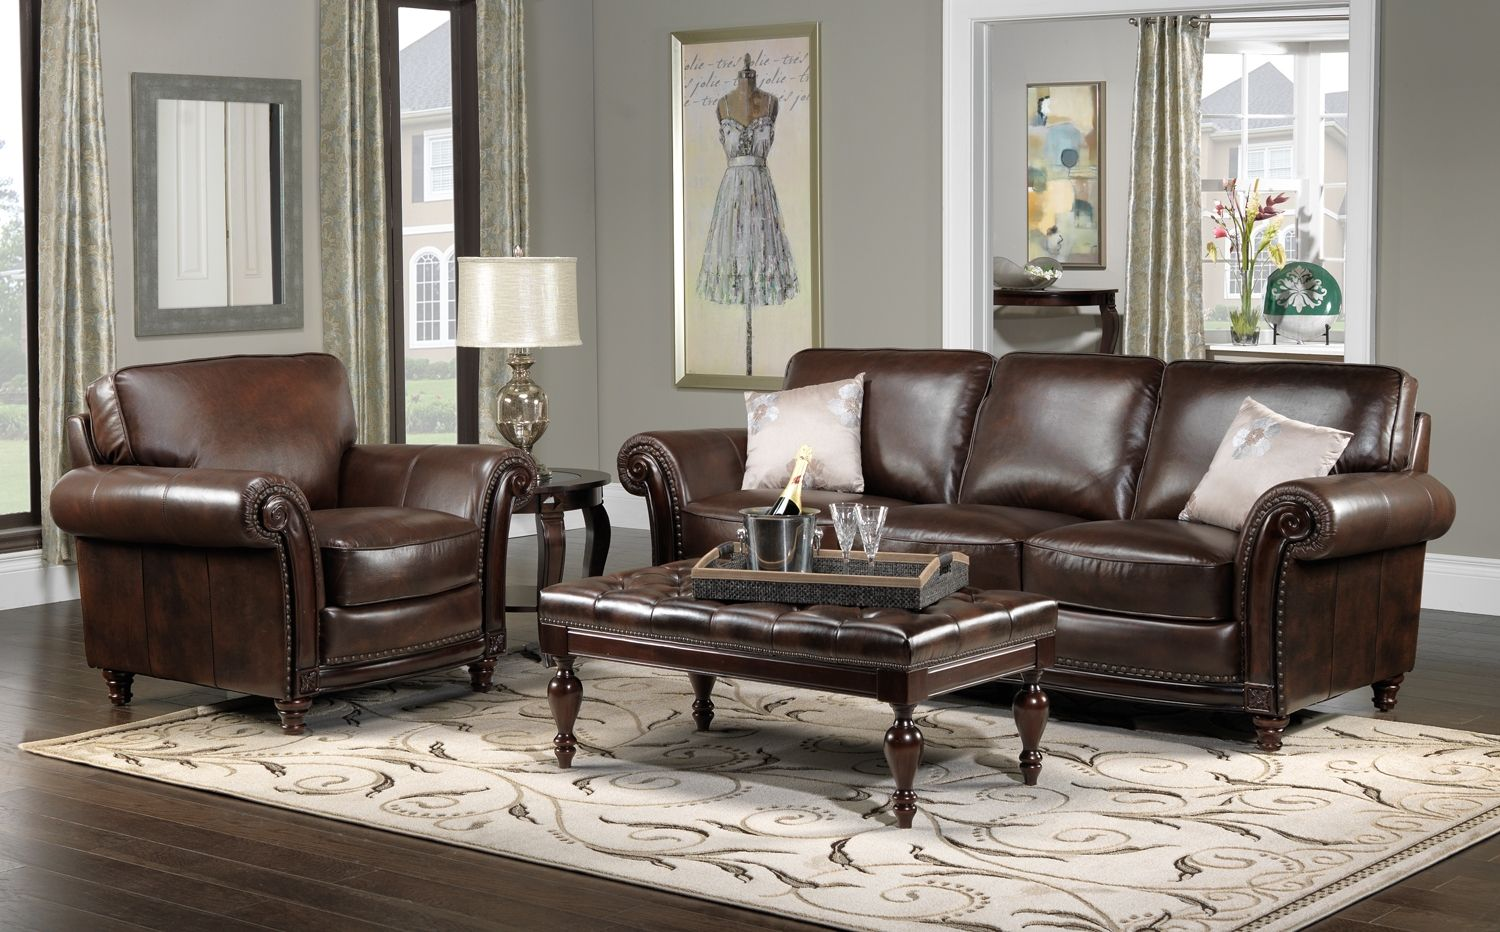 Dream house decor ideas for brown leather furniture gngkxz for Leather couch family room